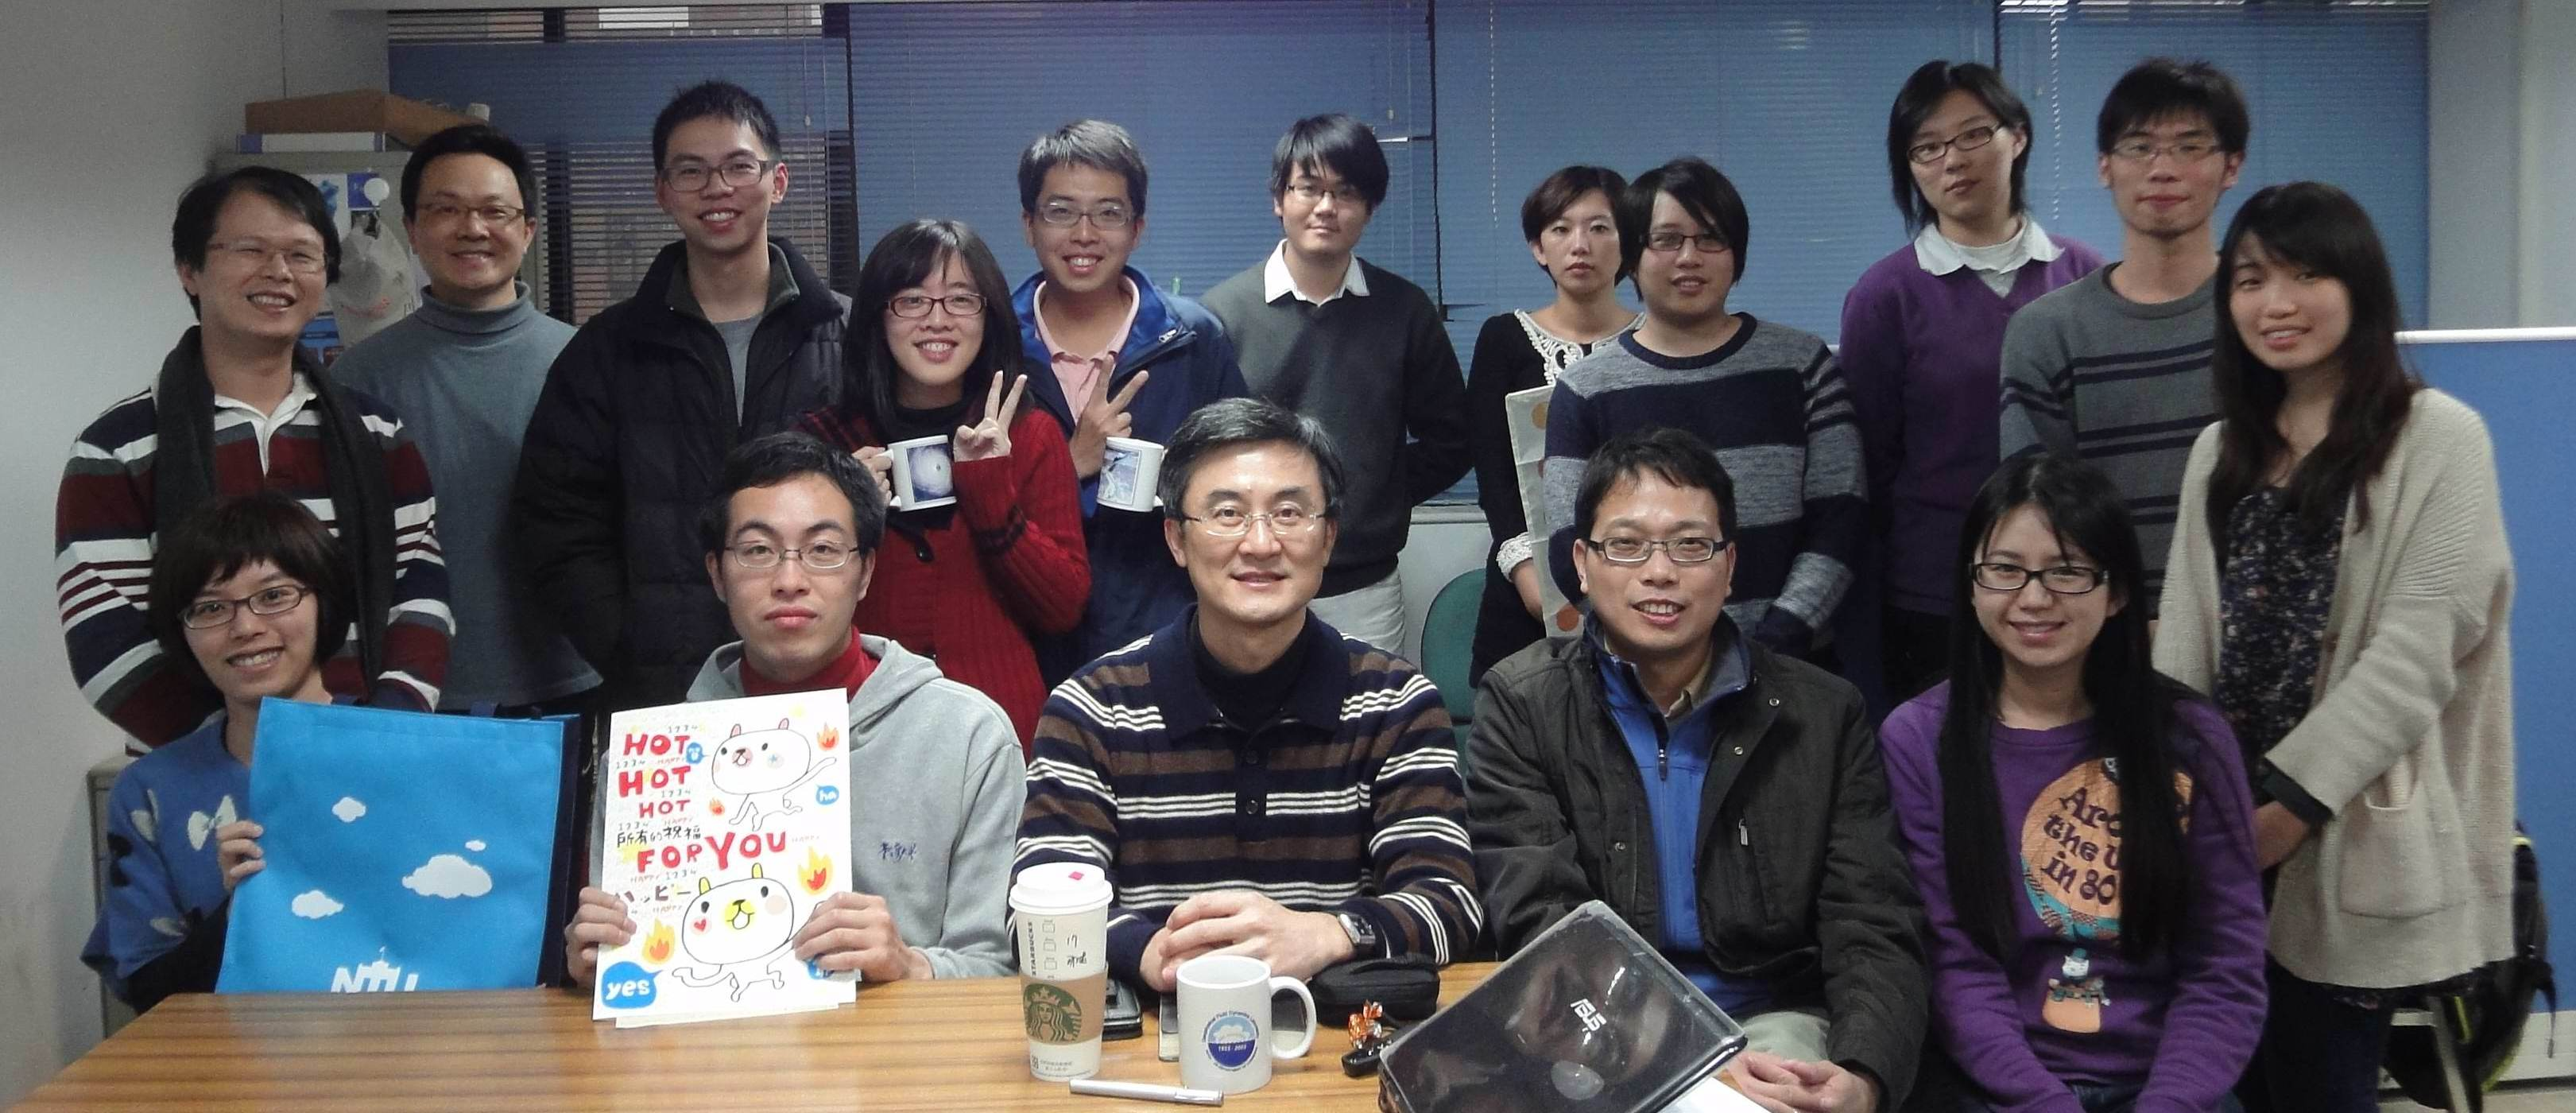 20120313 Farewell to Dr. Ito